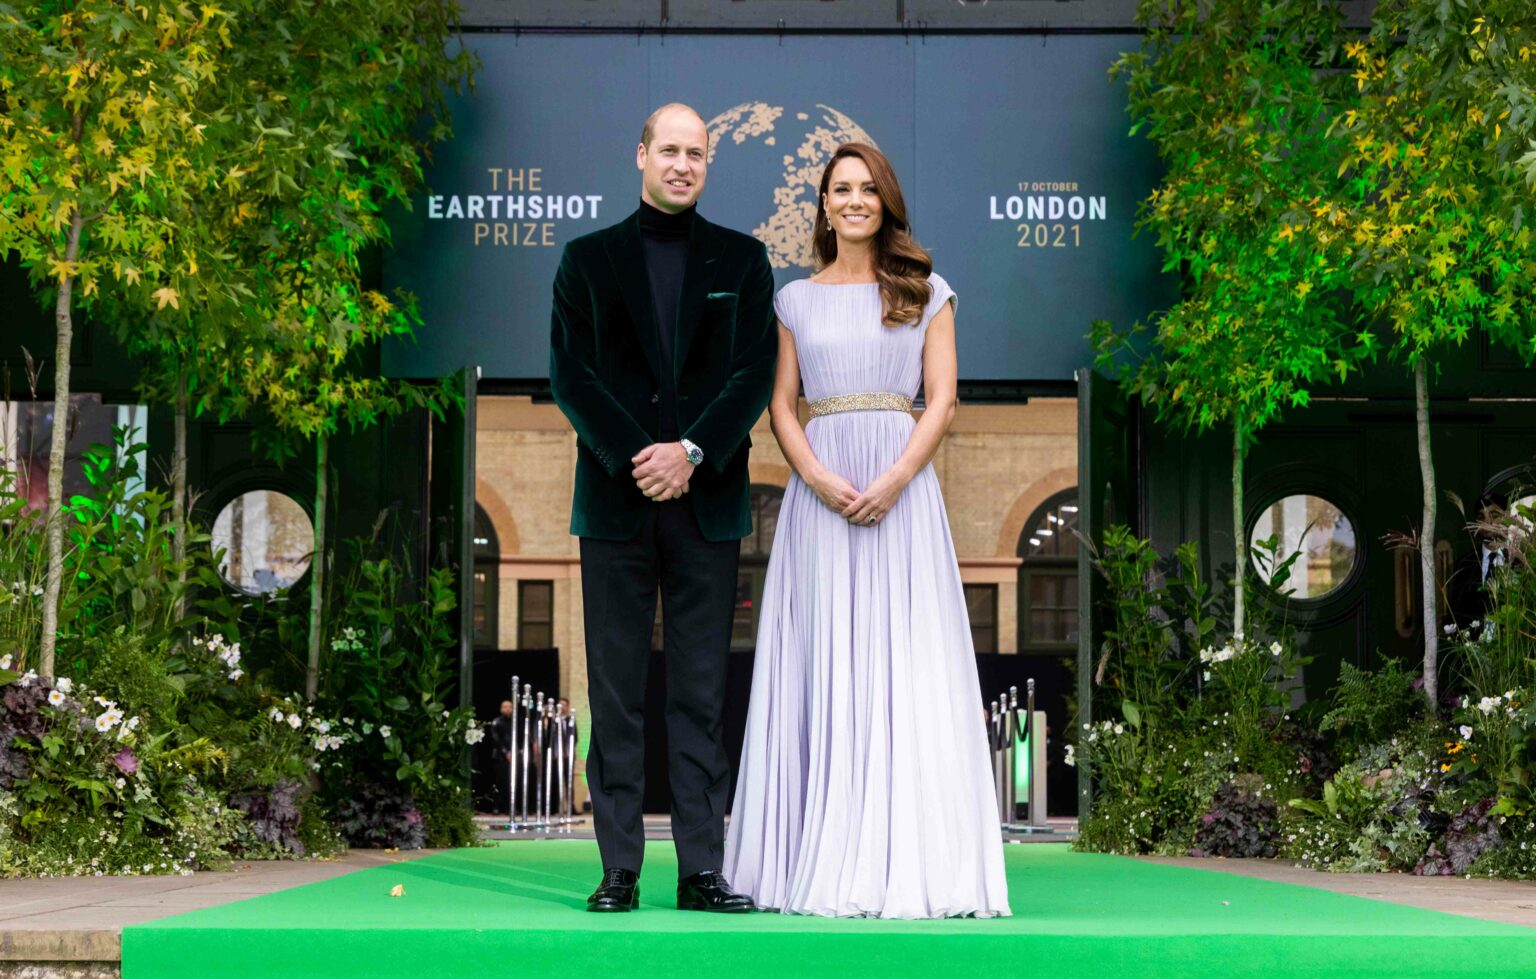 Earthshot Prize William and Kate